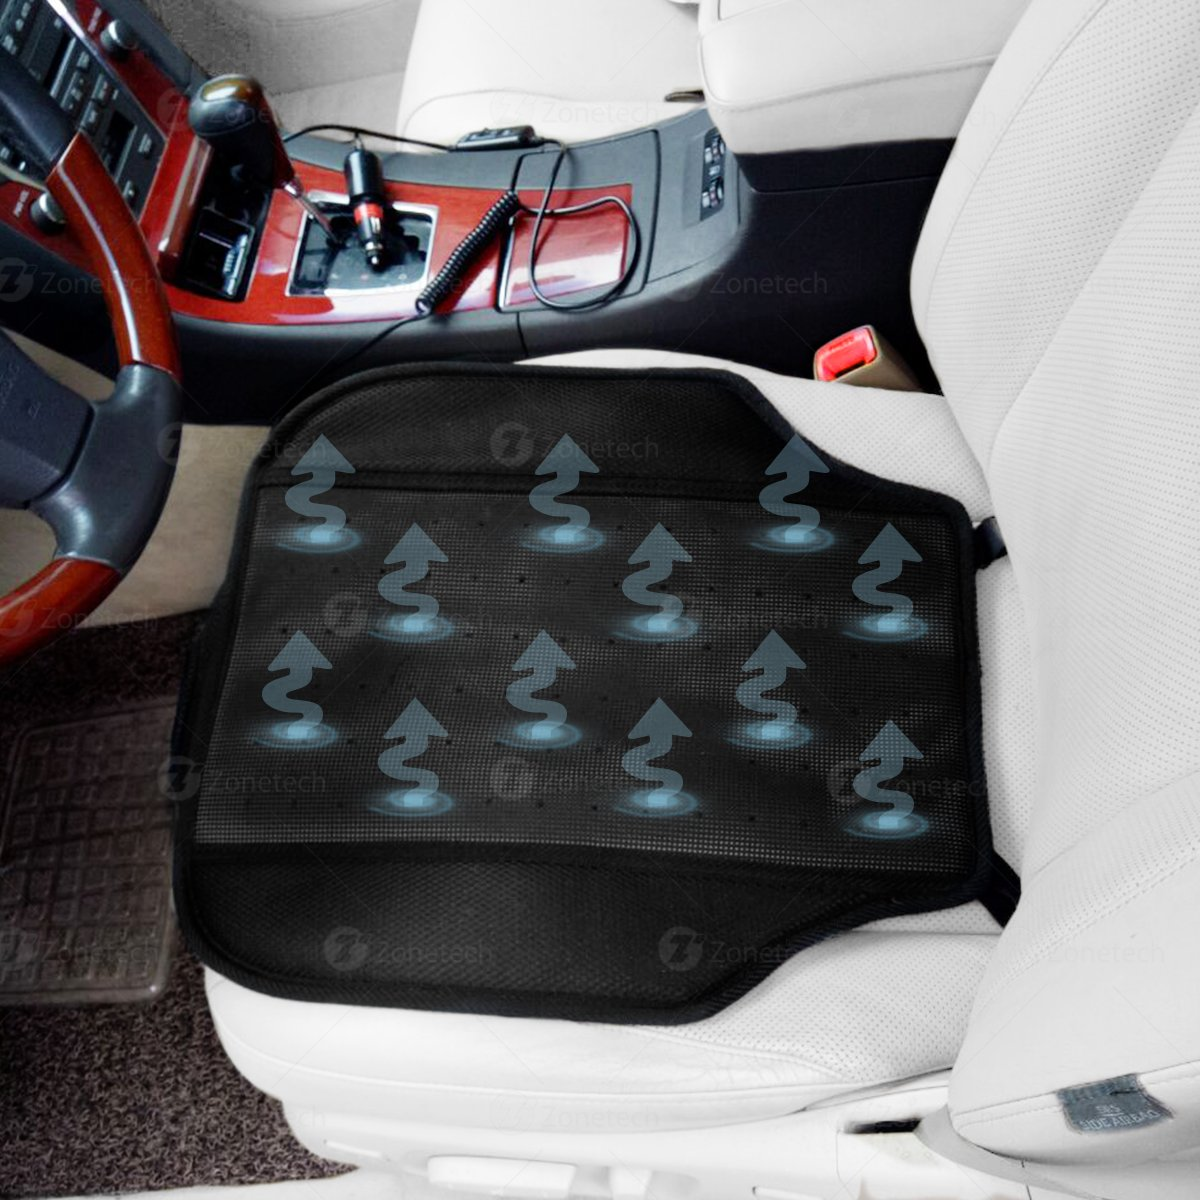 Zone Tech Car Vehicle Pad Seat Cooler Cushion Cover Summer Cooling